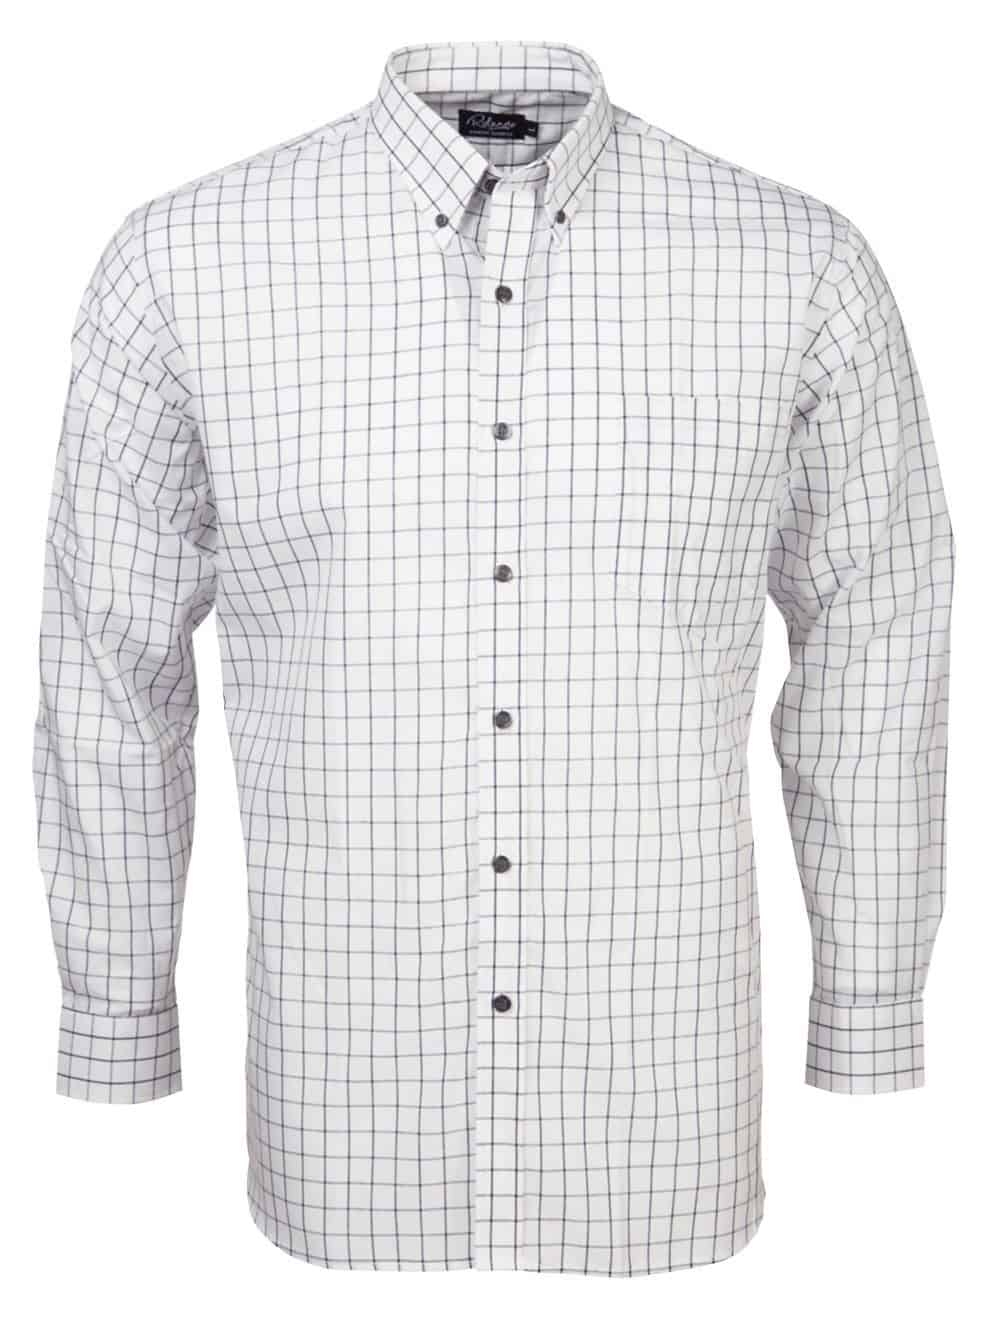 K114 S/S Lounge Shirts and Blouses